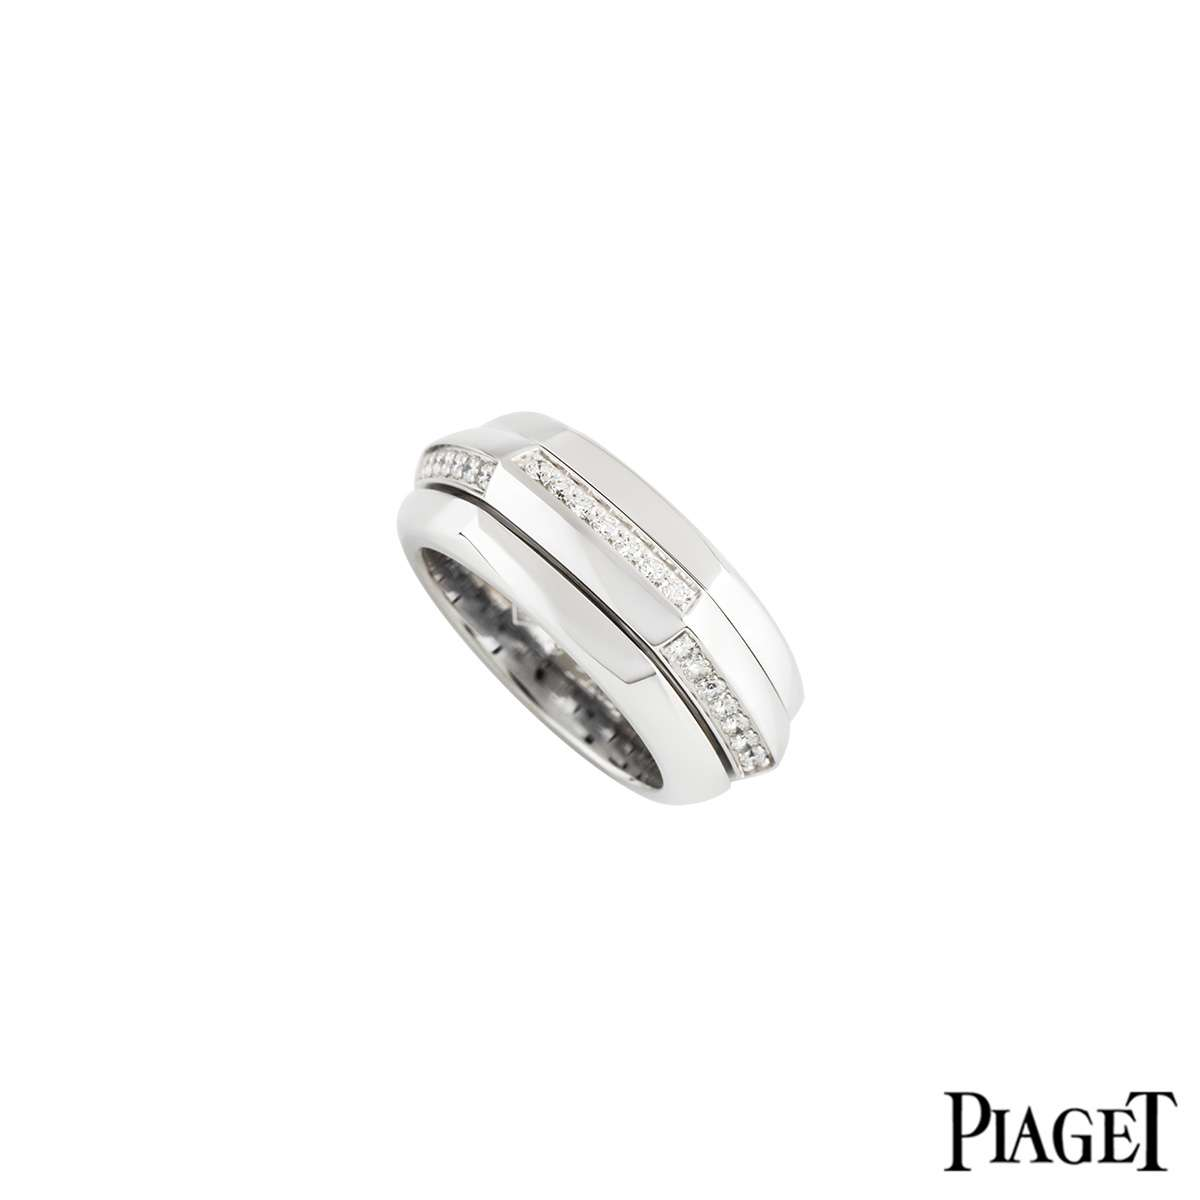 Piaget 18k White Gold Diamond Set Possession Ring?